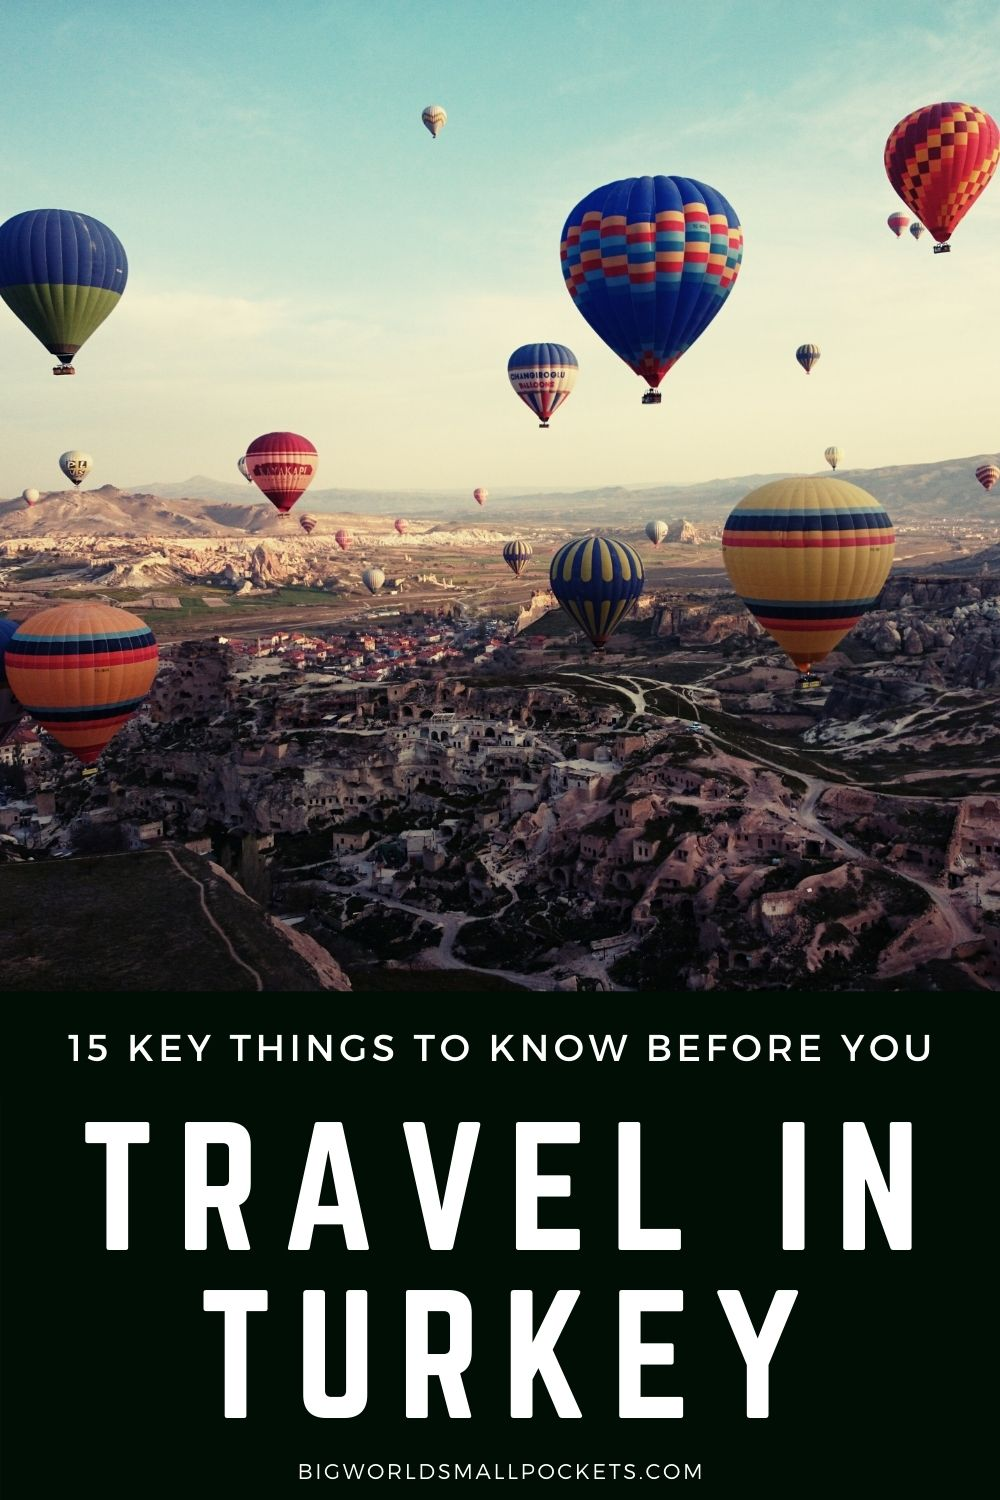 15 Crucial Things to Know Before You Travel Turkey